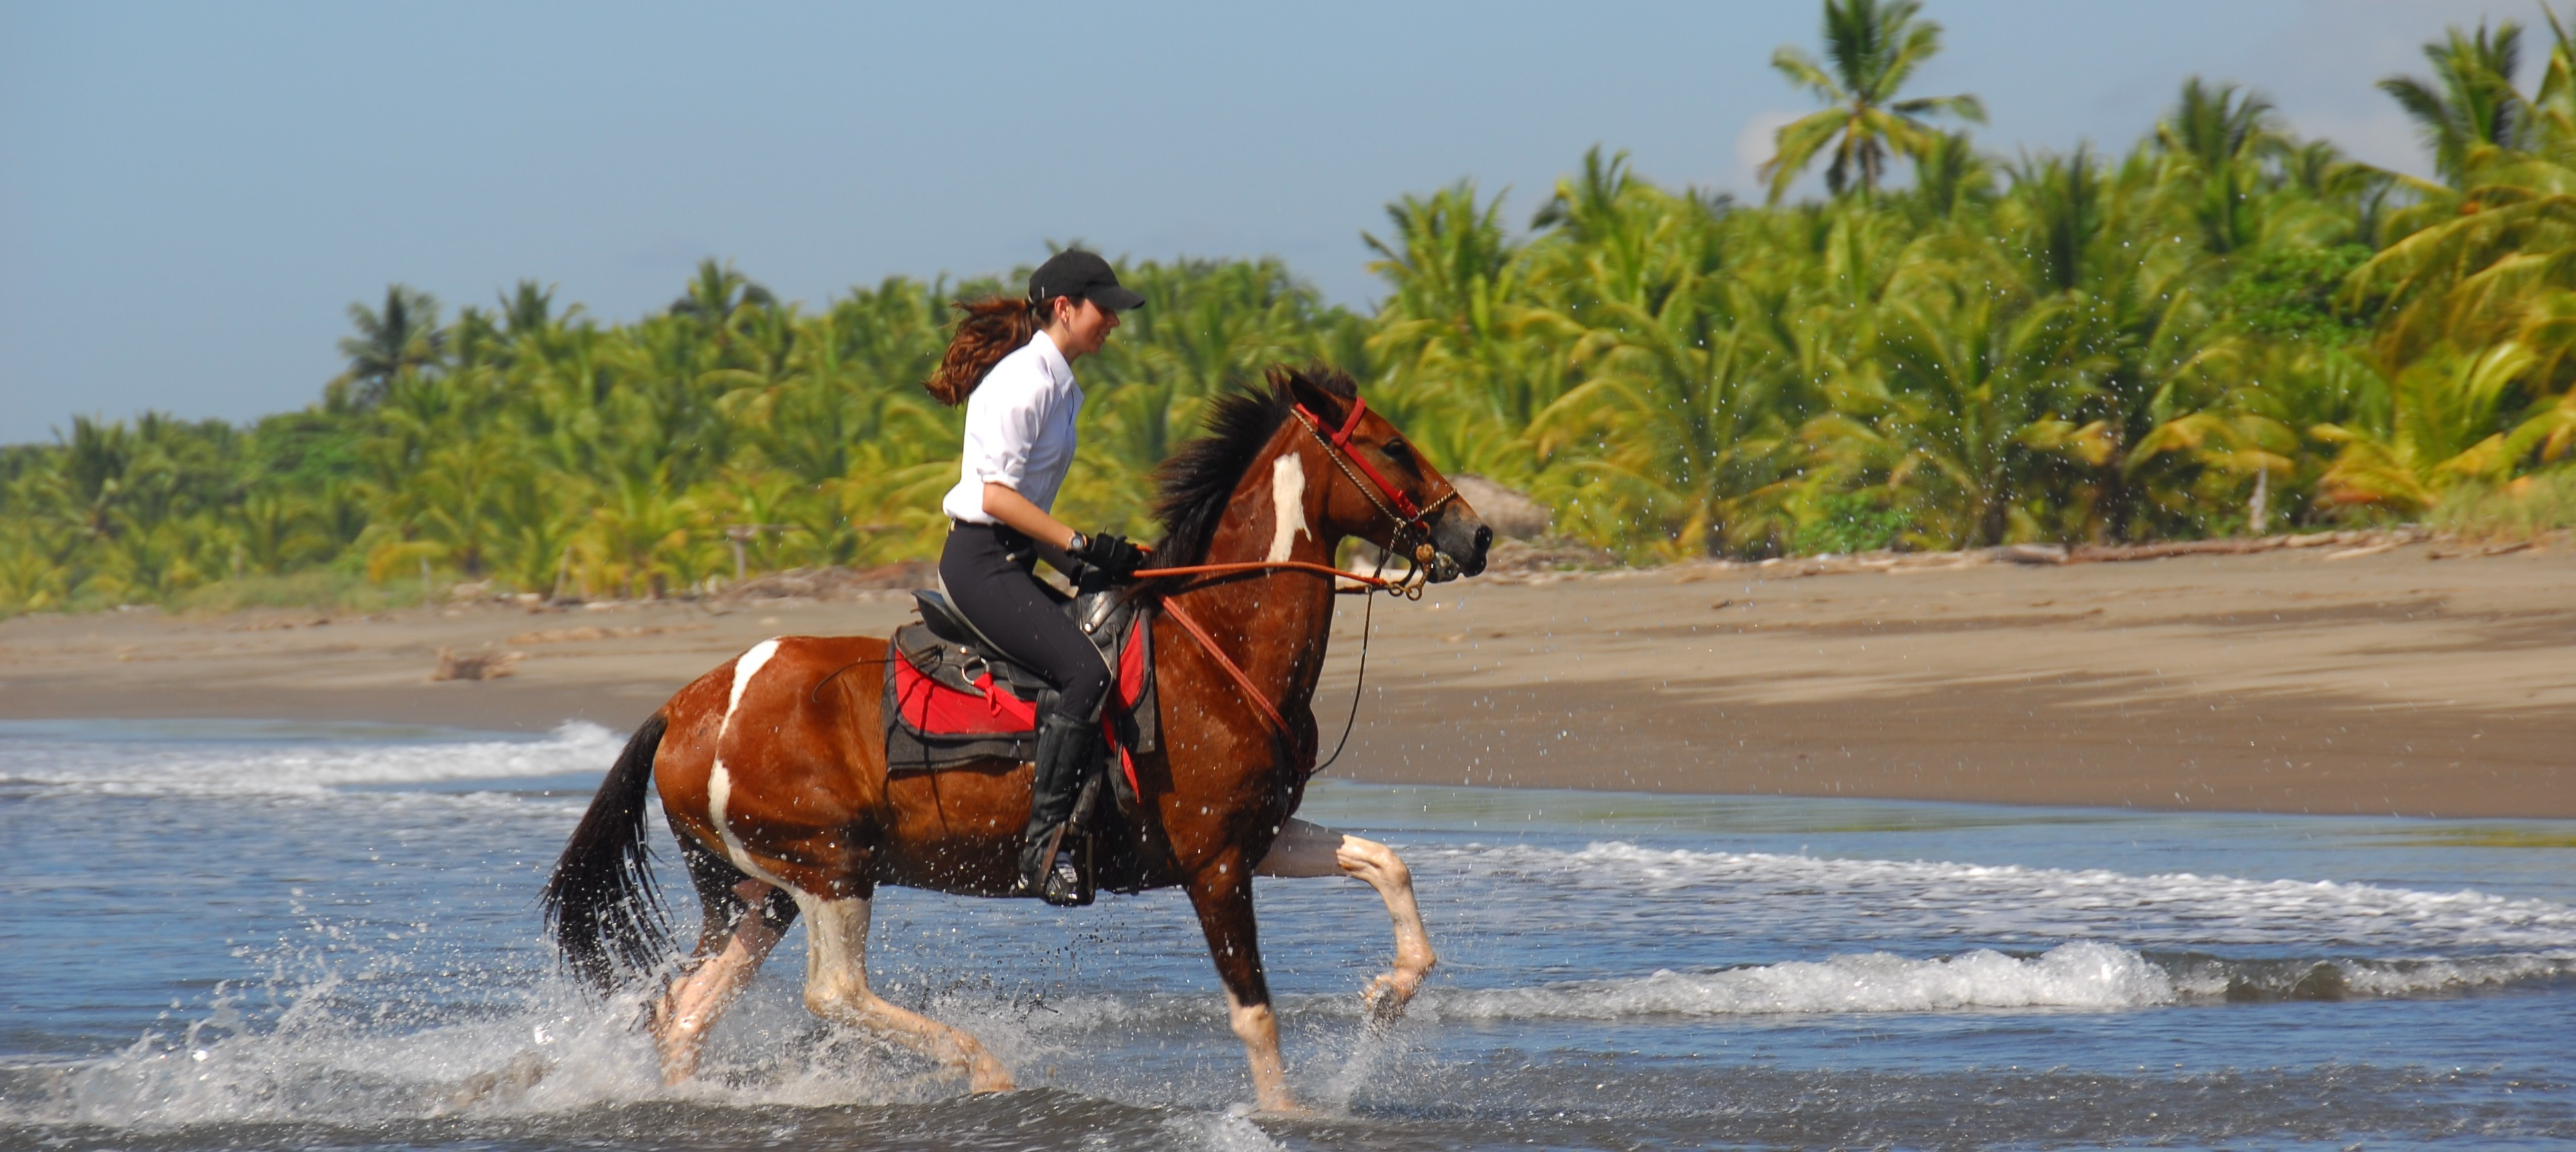 beach horseback riding Manuel Antonio - the riding adventure